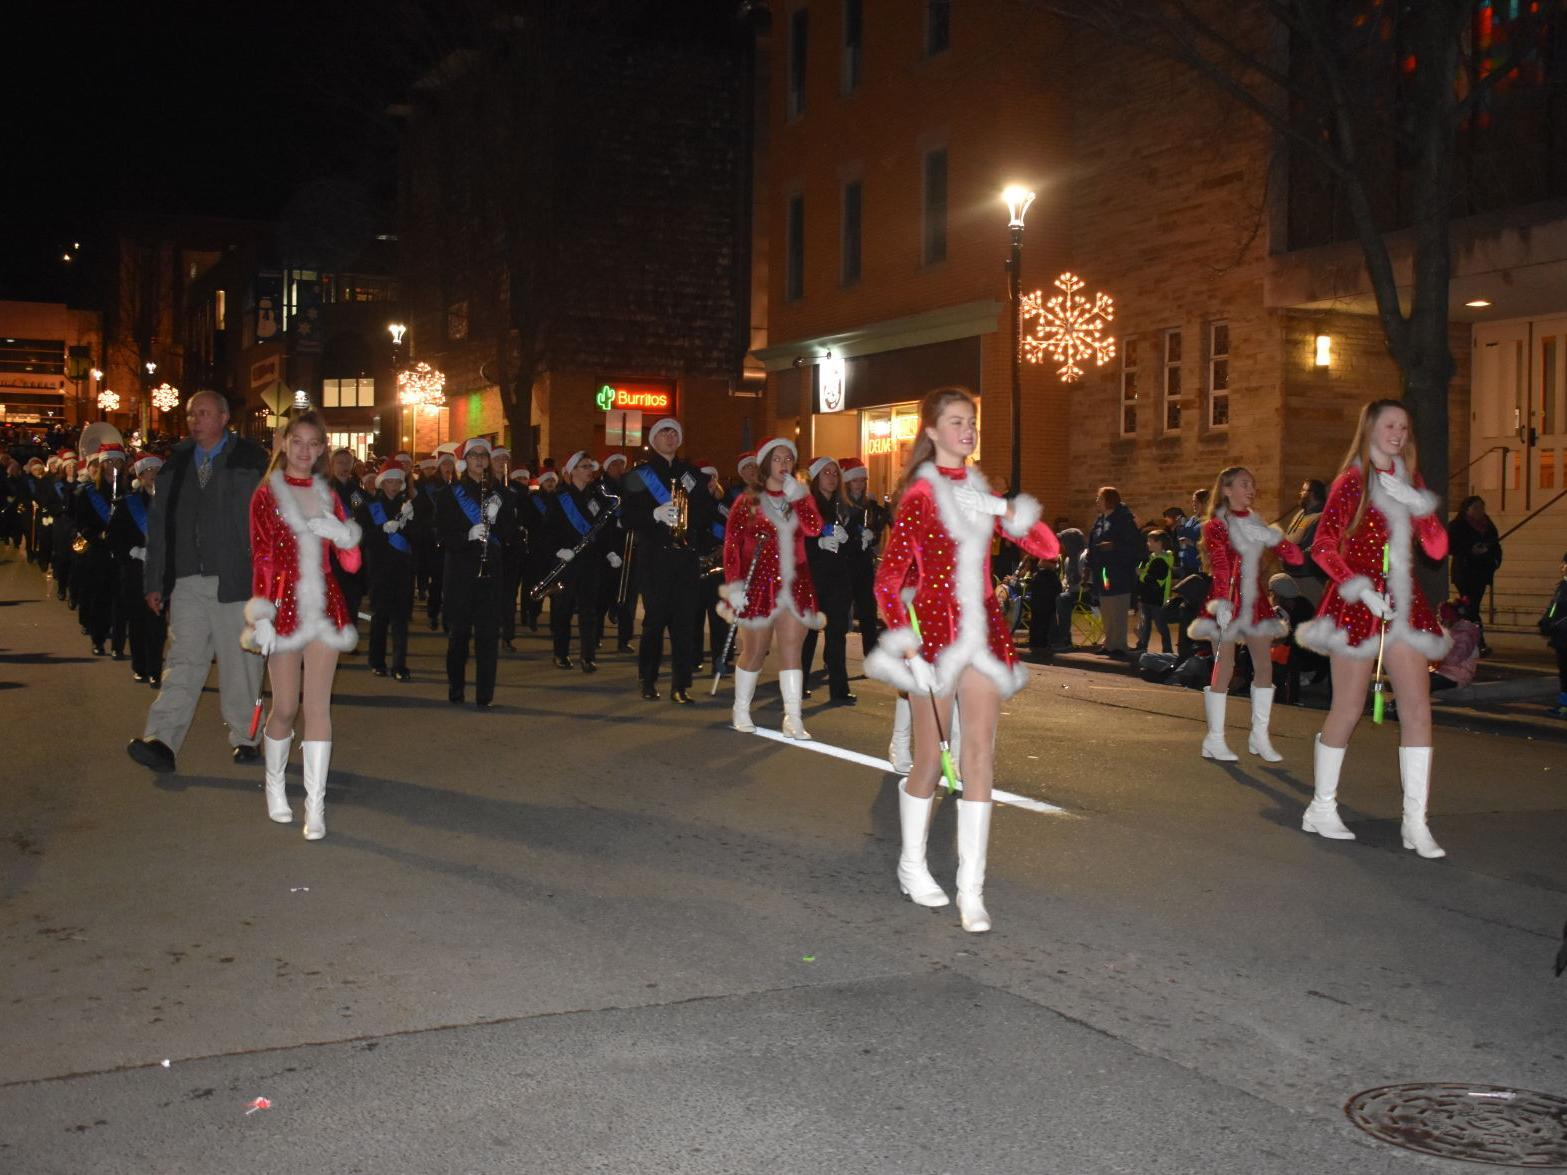 Wheeling Christmas Parade 2021 Morgantown West Virginia Christmas Parade Canceled Due To Pandemic Concerns Video Featuring Footage Of Past Events Santa To Premiere Online As Holiday Nears Wv News Wvnews Com